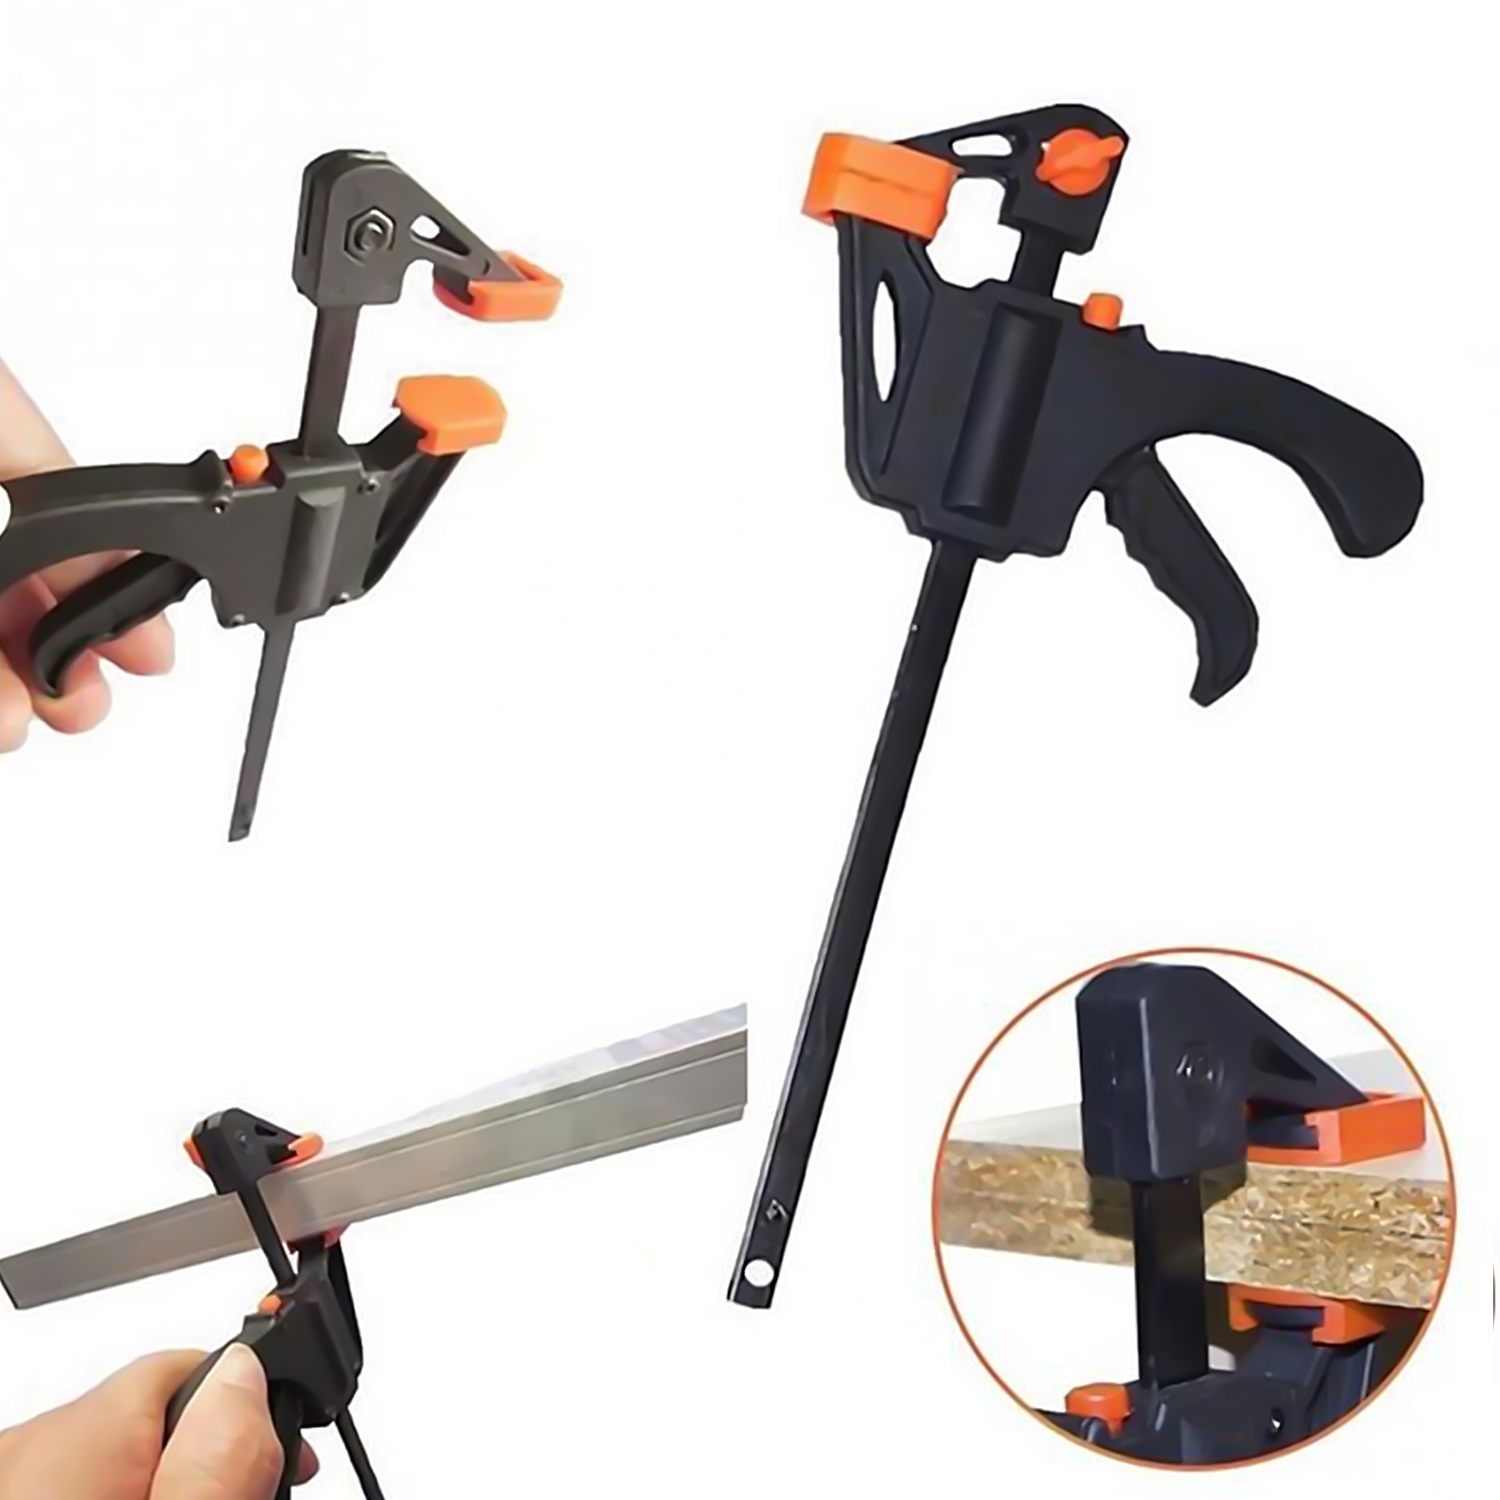 5pcs 4 Inch F-Clamps Bar Quick Clip Grip Ratchet Release Squeeze Woodworking DIY Carpenter Hand Tool Kit